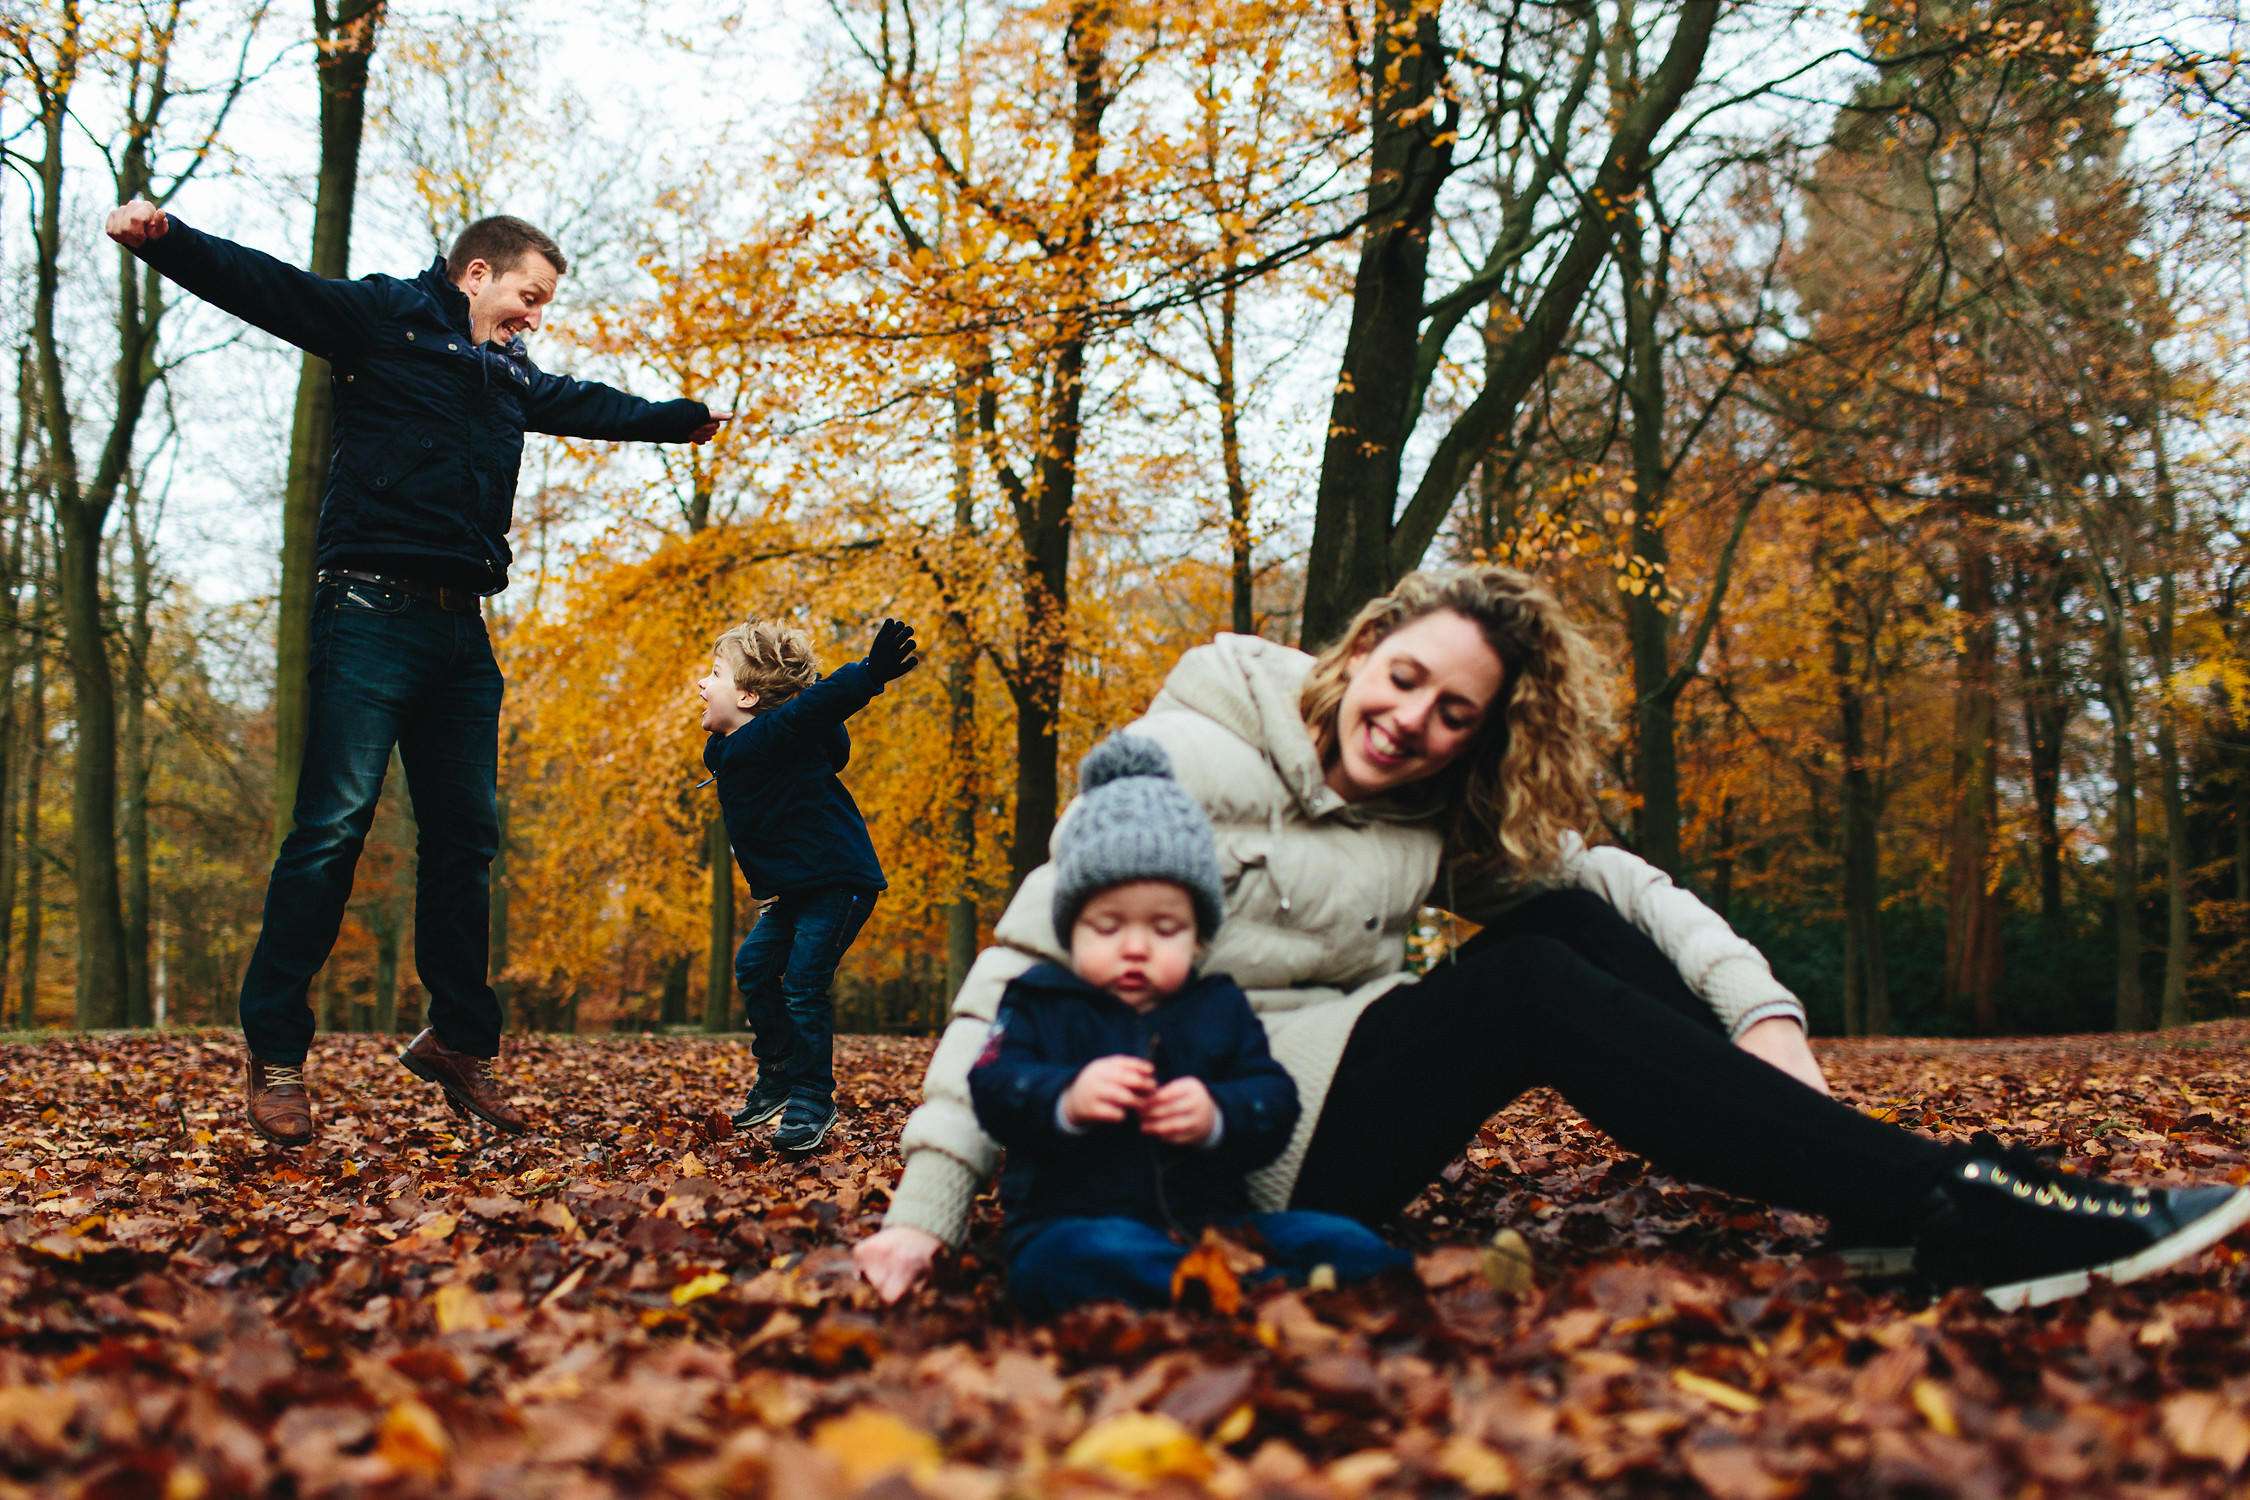 Buckinghamshire-Family-Portrait-Photography-13